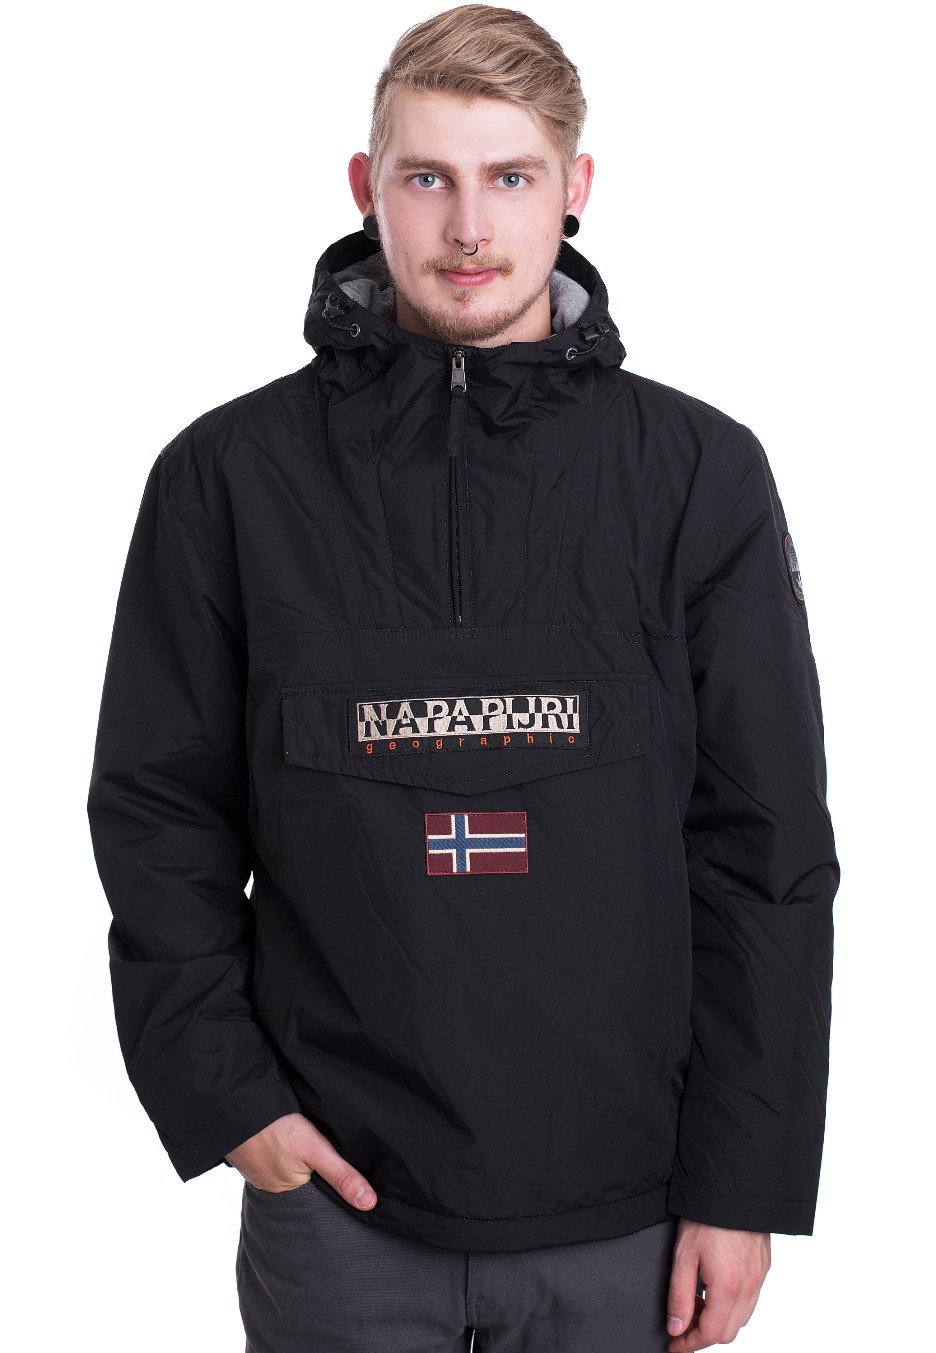 Napapijri - Rainforest Winter Black - Jacket - Streetwear Shop -  Impericon.com AU 78ee7992c47